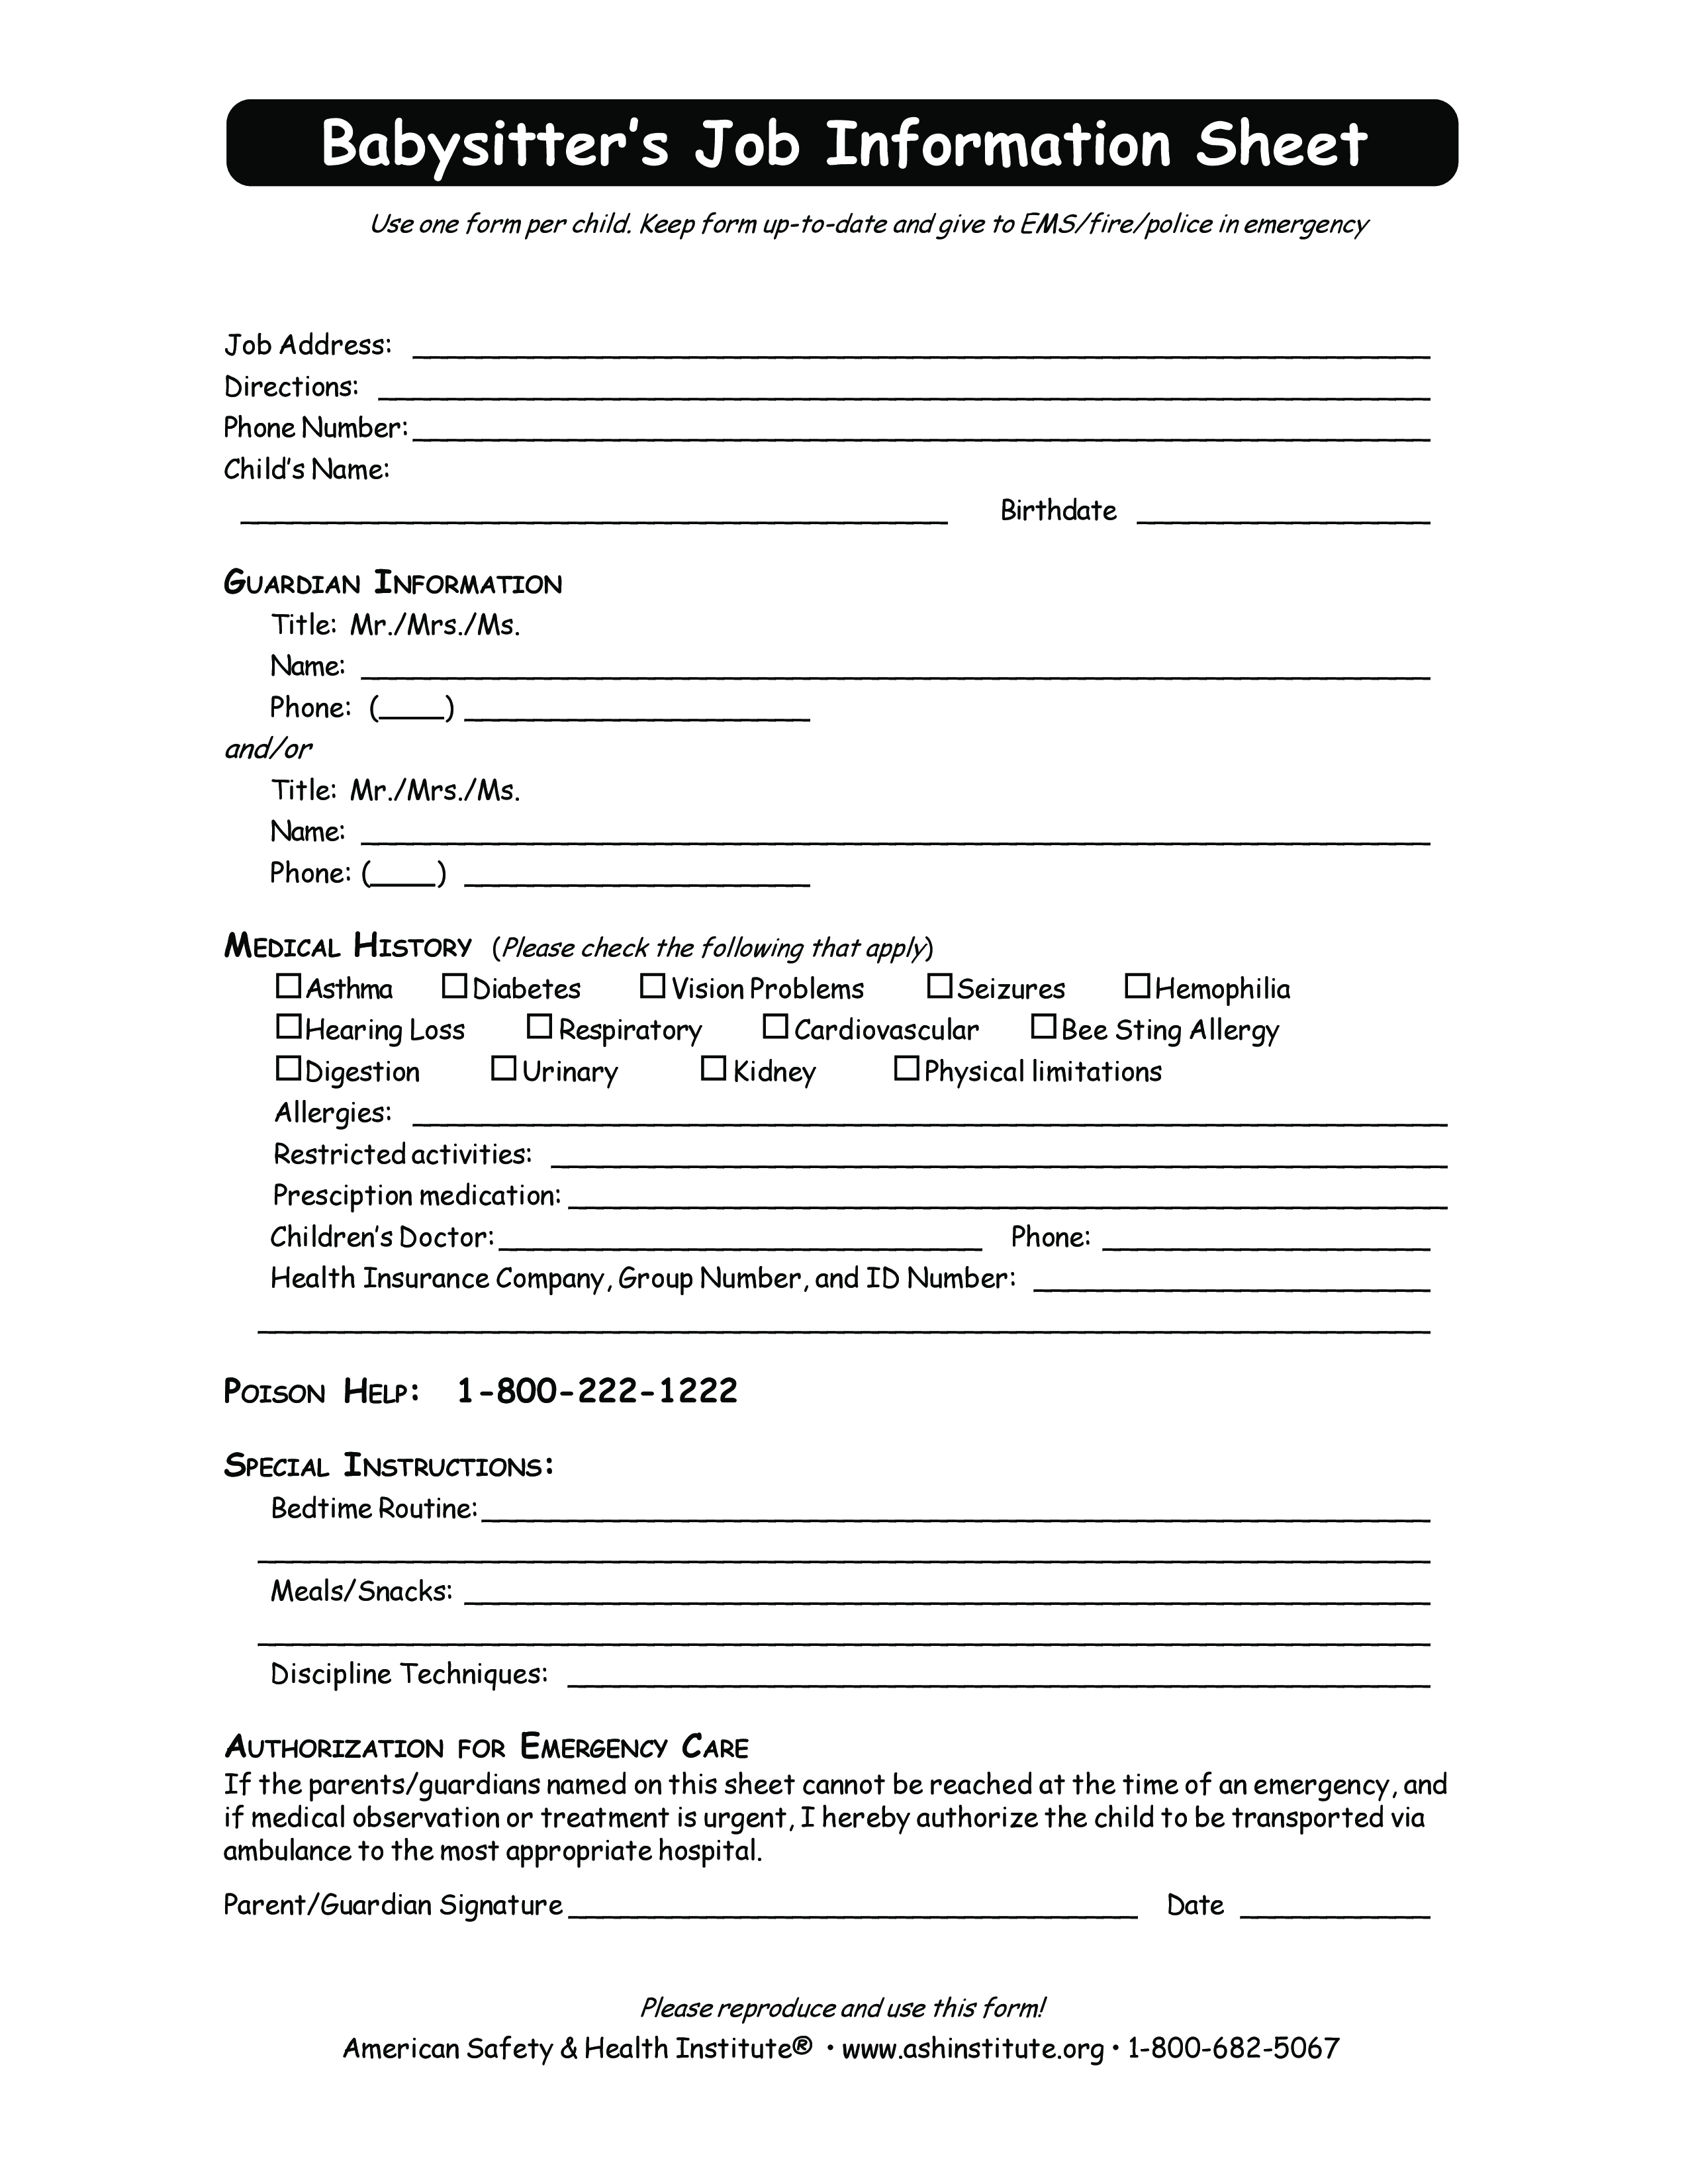 free babysitter job information sheet templates at